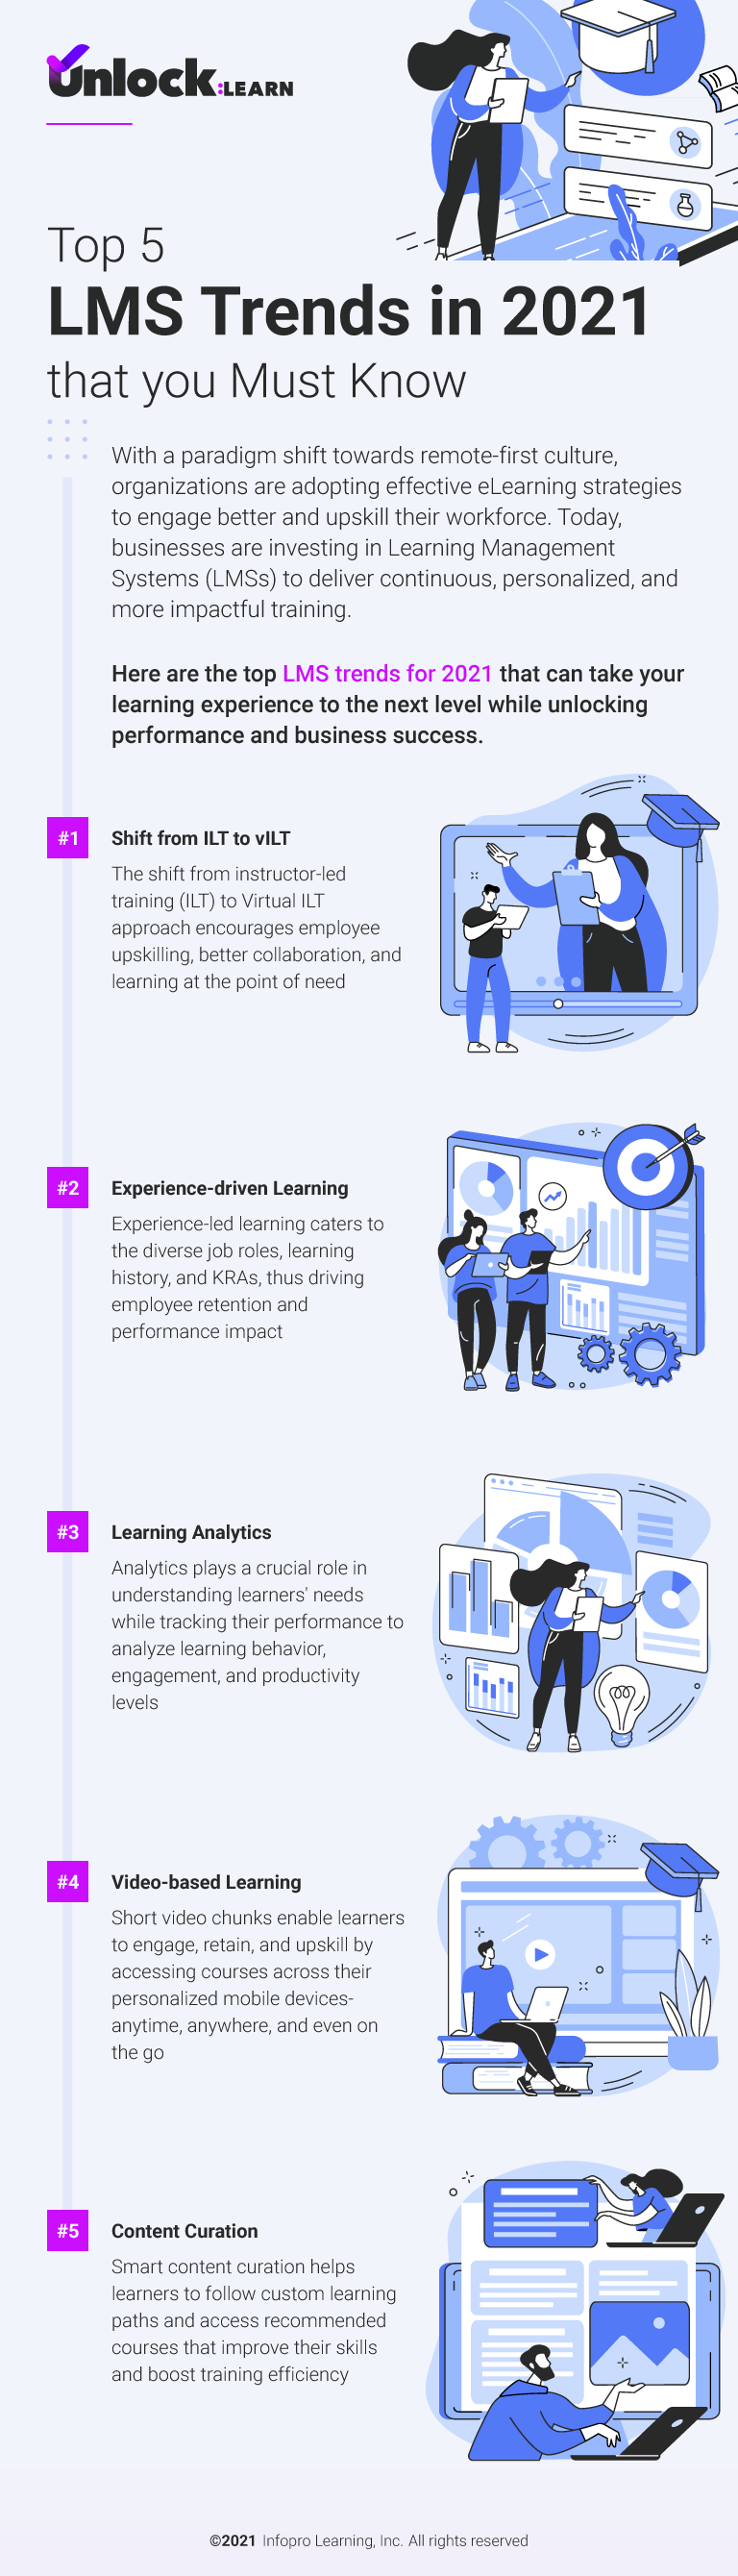 Top 5 LMS Trends in 2021 that you Must Know